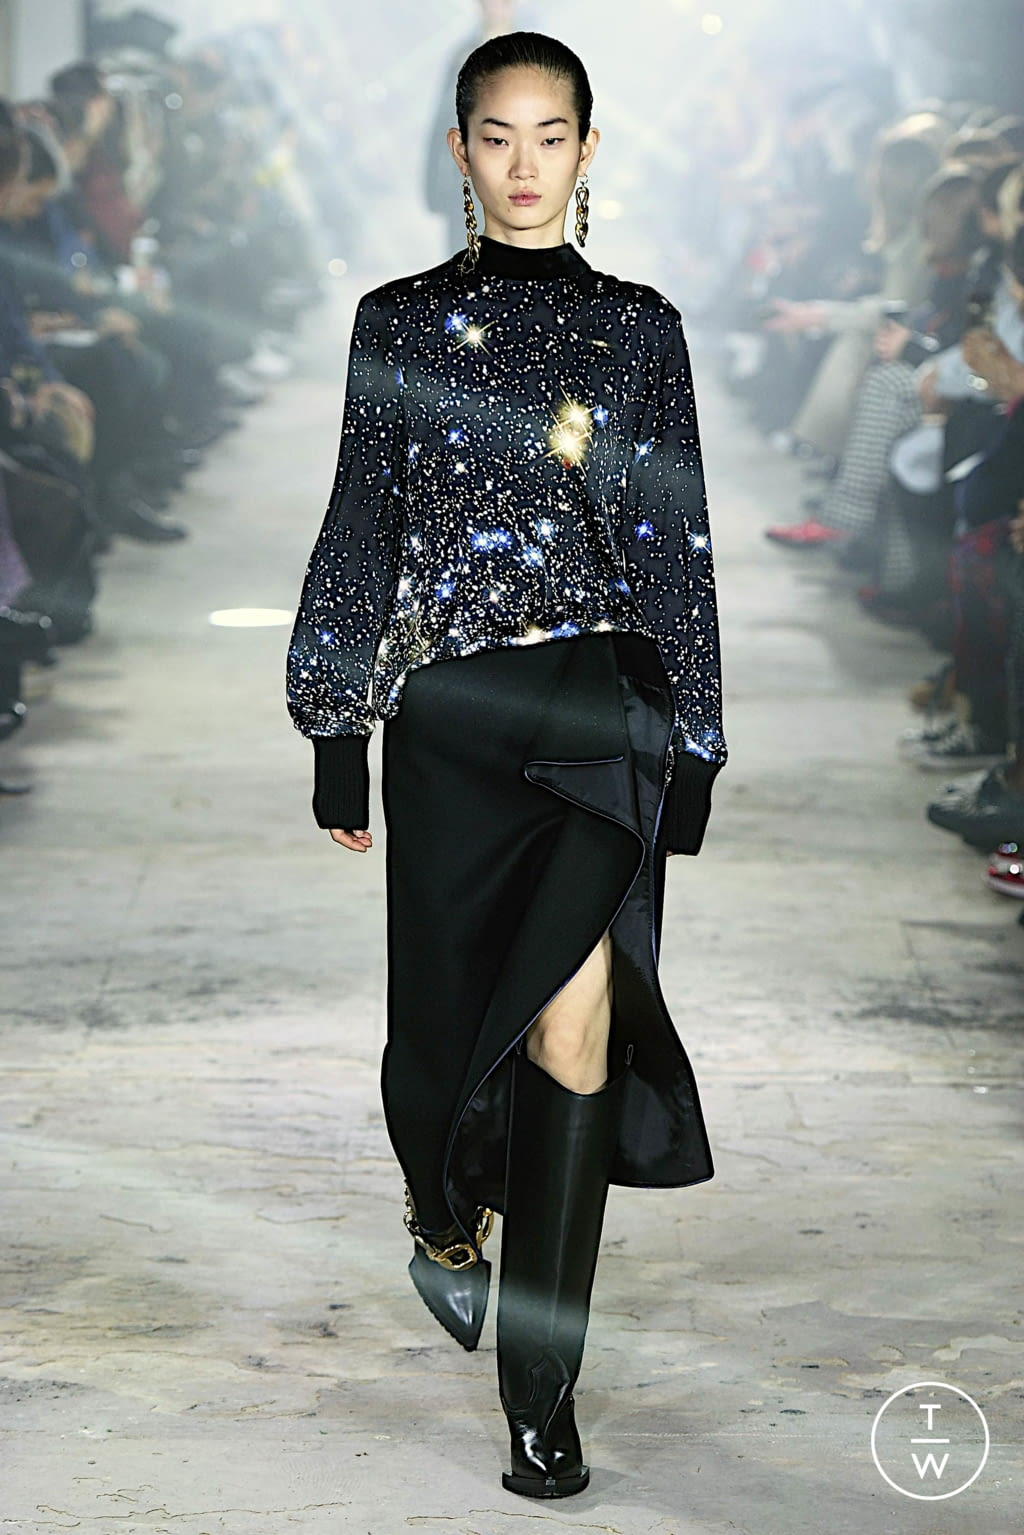 Fashion Week Paris Fall/Winter 2020 look 36 de la collection Sacai womenswear